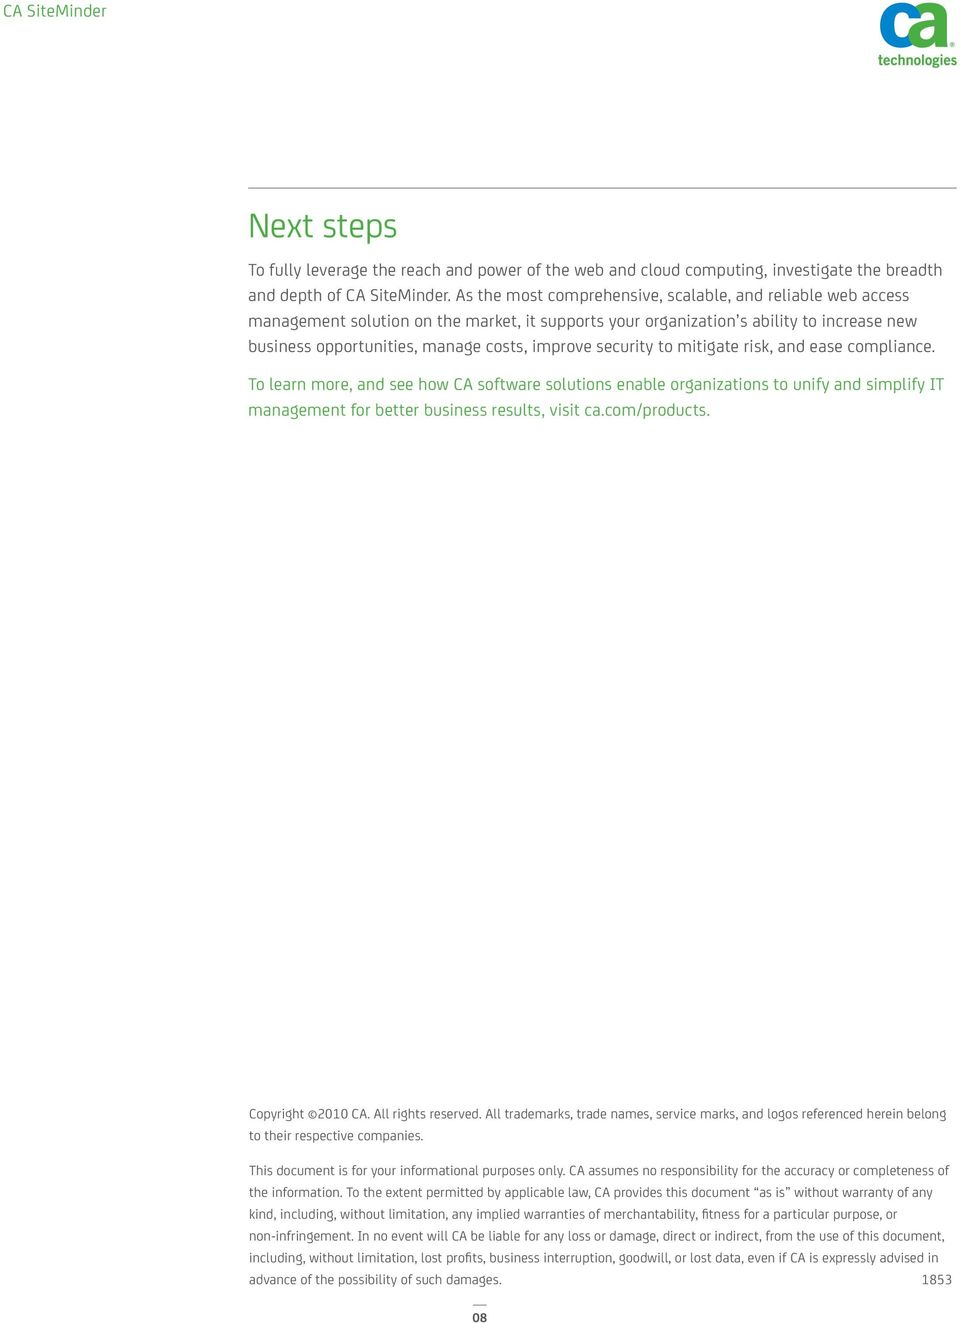 security to mitigate risk, and ease compliance. To learn more, and see how CA software solutions enable organizations to unify and simplify IT management for better business results, visit ca.